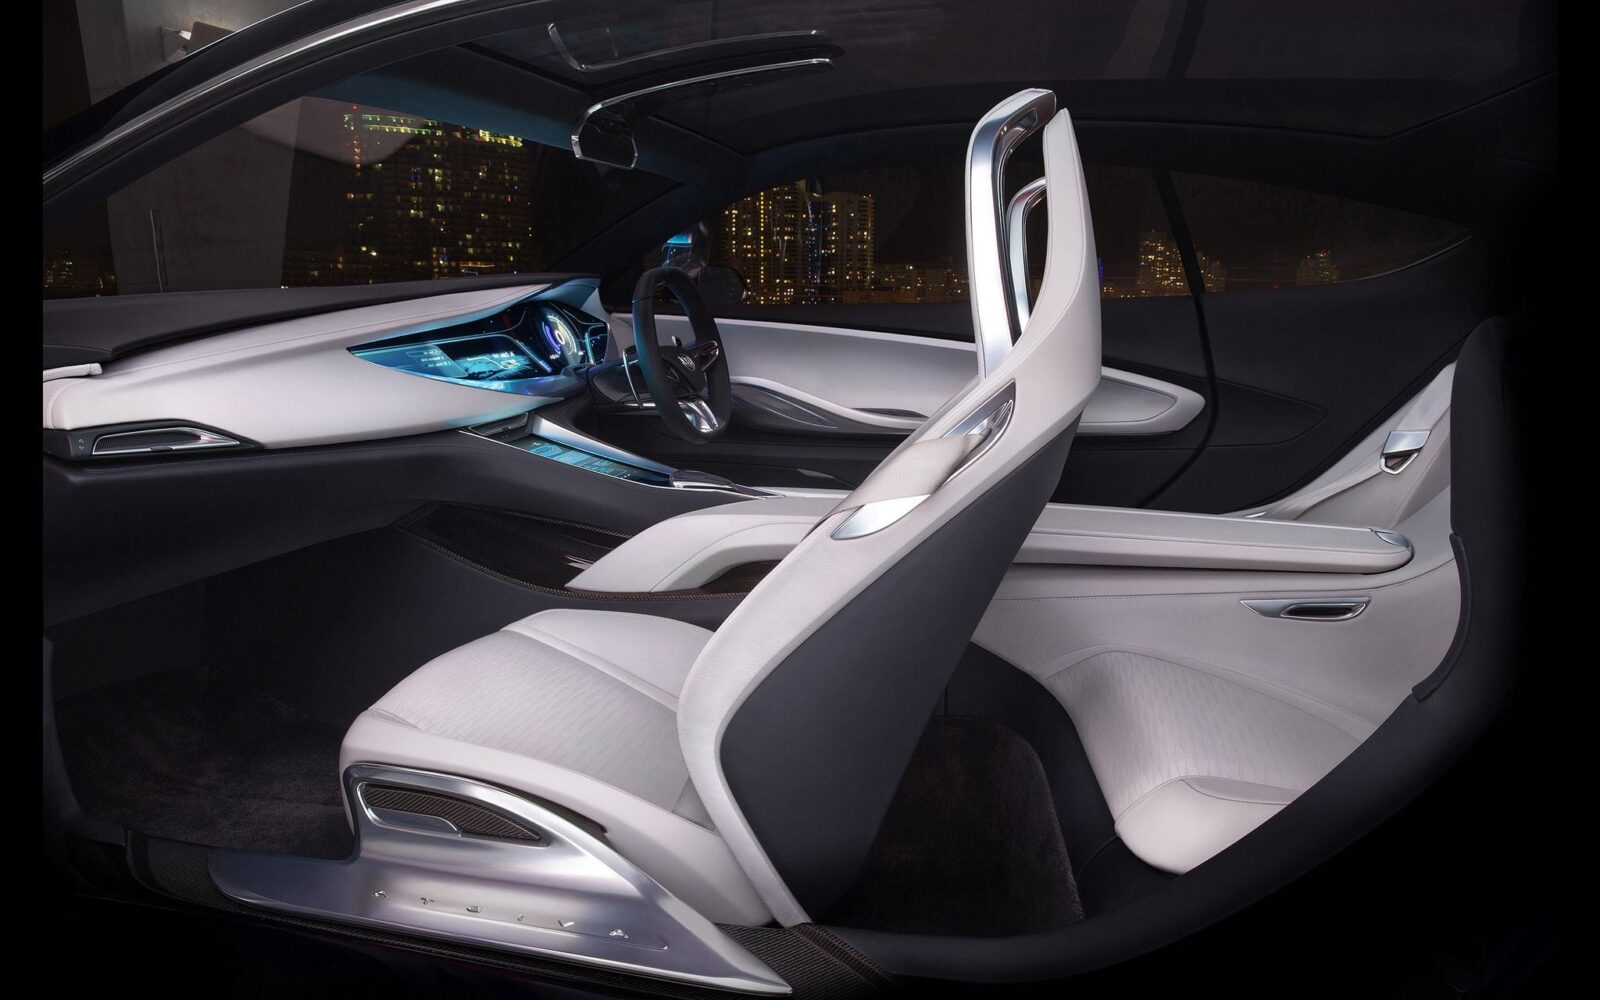 2016 Buick Avista interior HD pic for PC